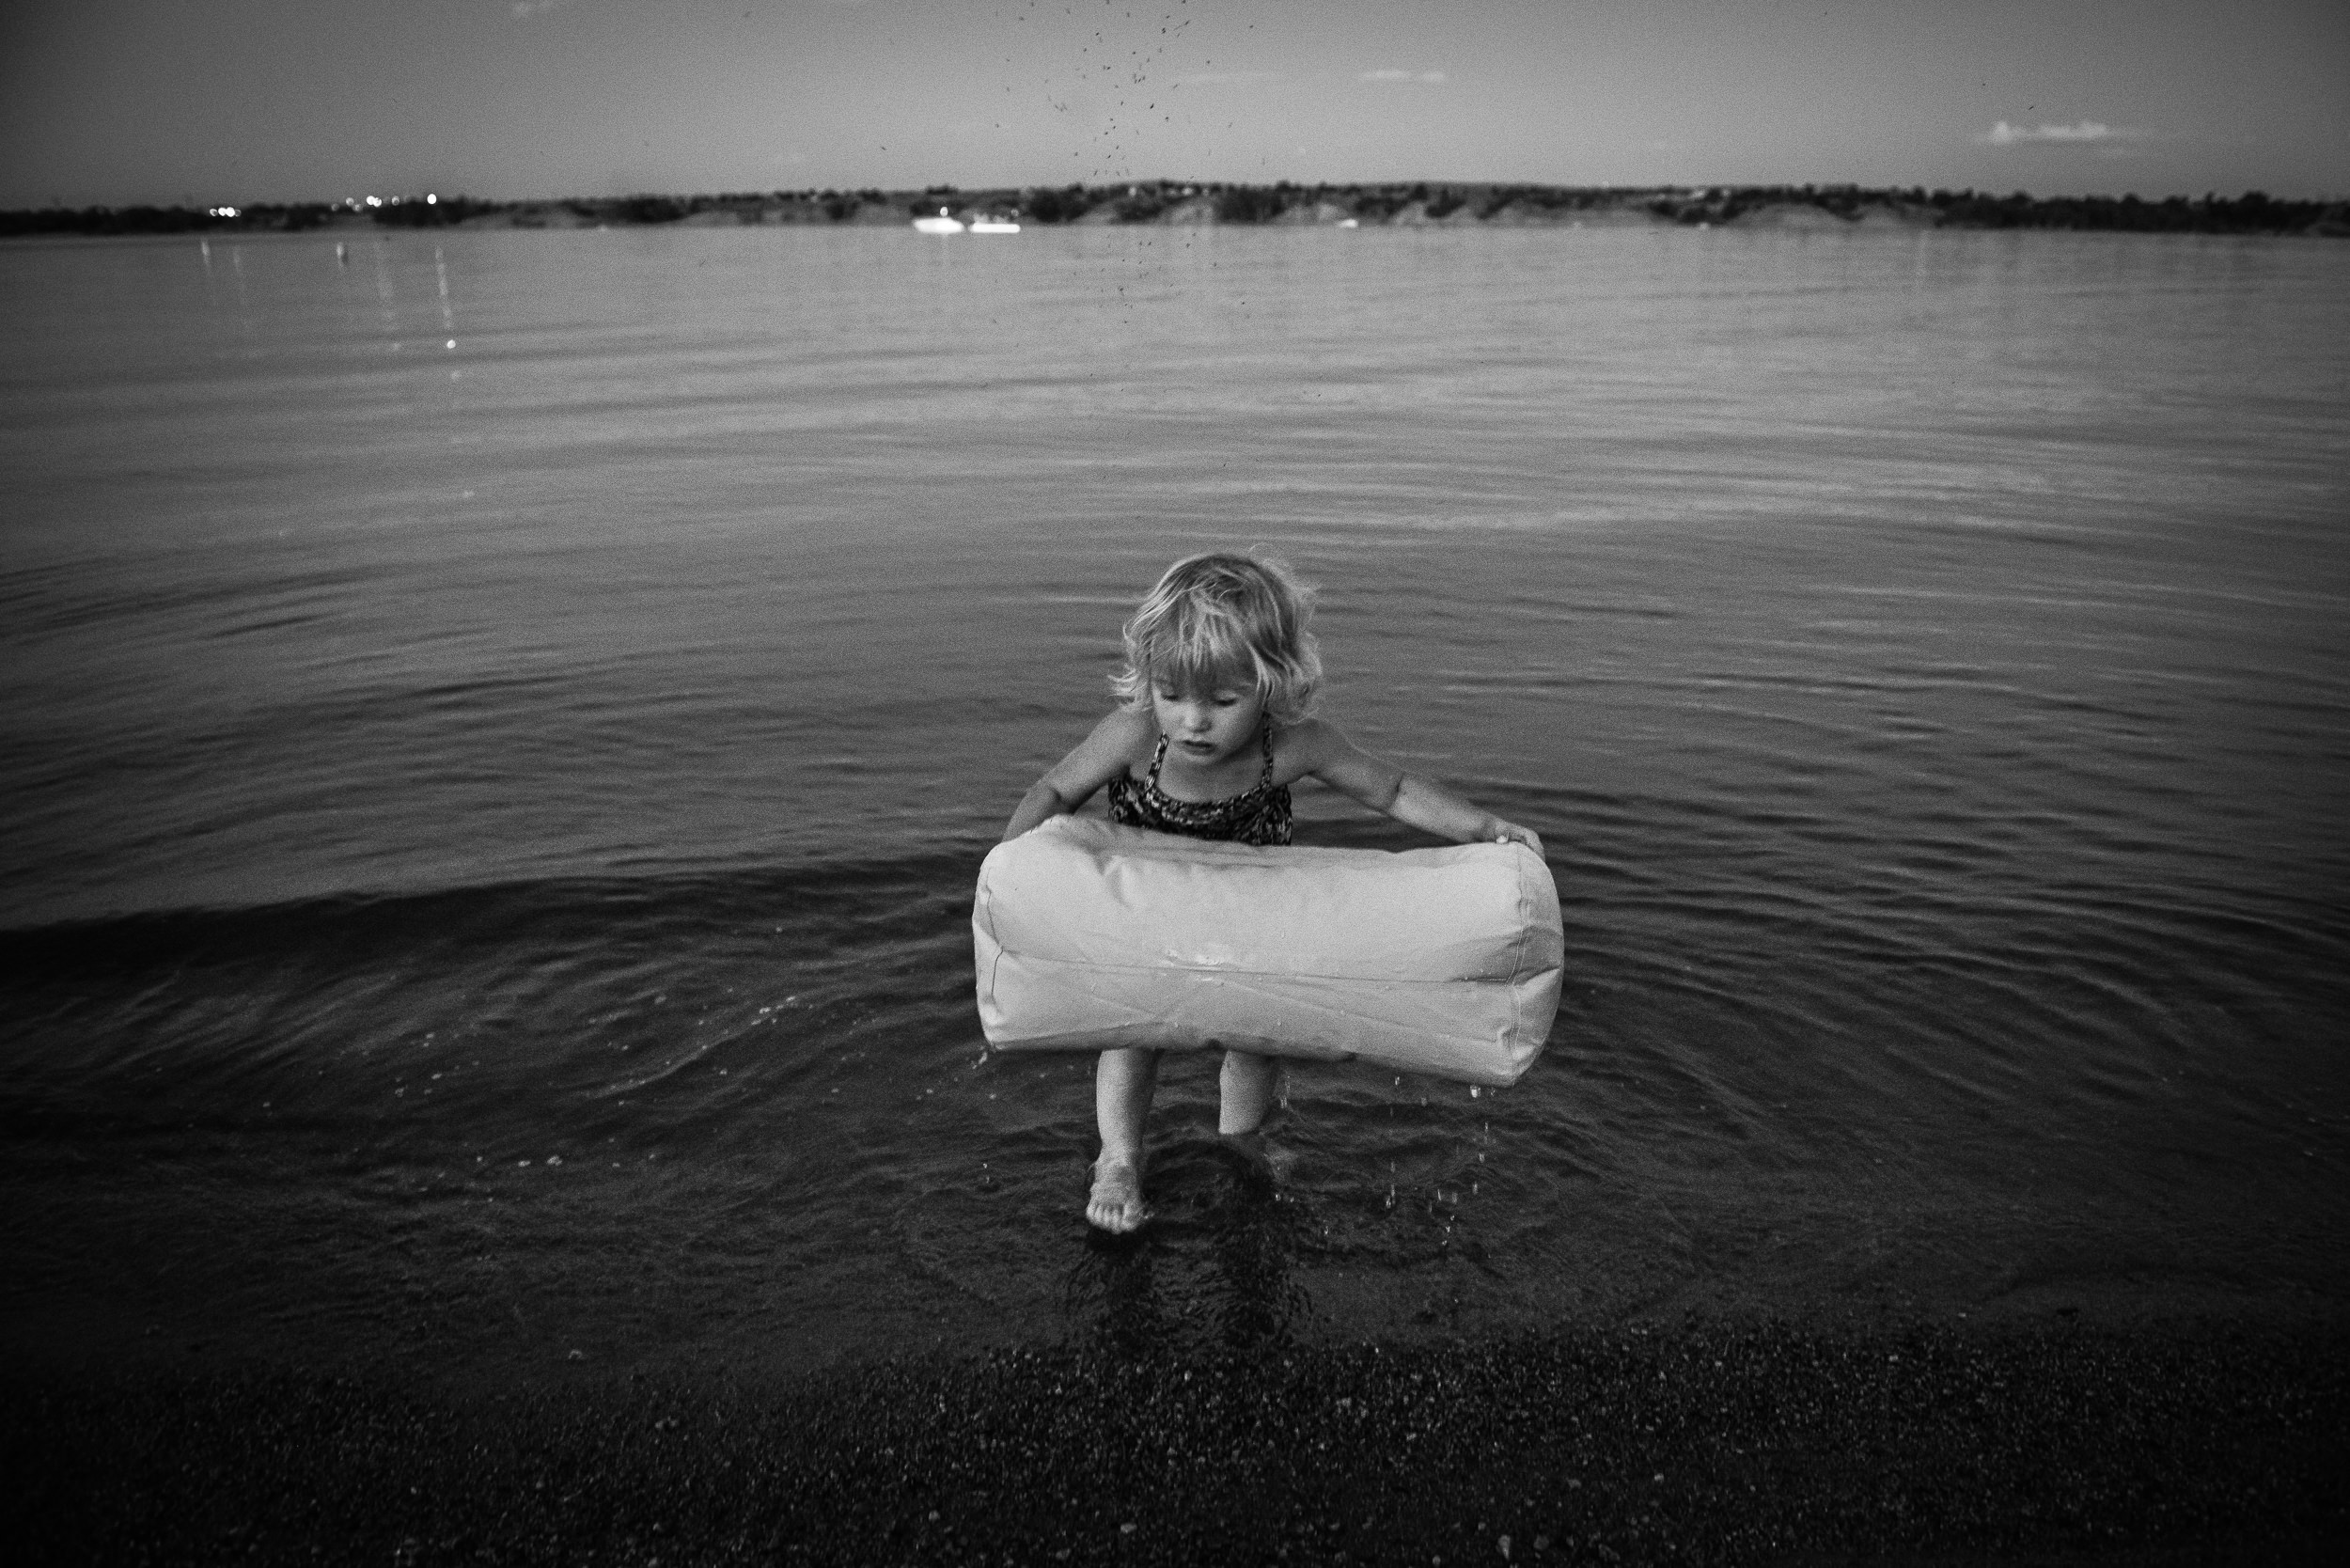 Blog - The Pen & Camera - Molly Rees Photo - Black and White Documentary Childhood Photography - girl at night in water at Chatfield Reservoir in Denver, Colorado by M. Menschel